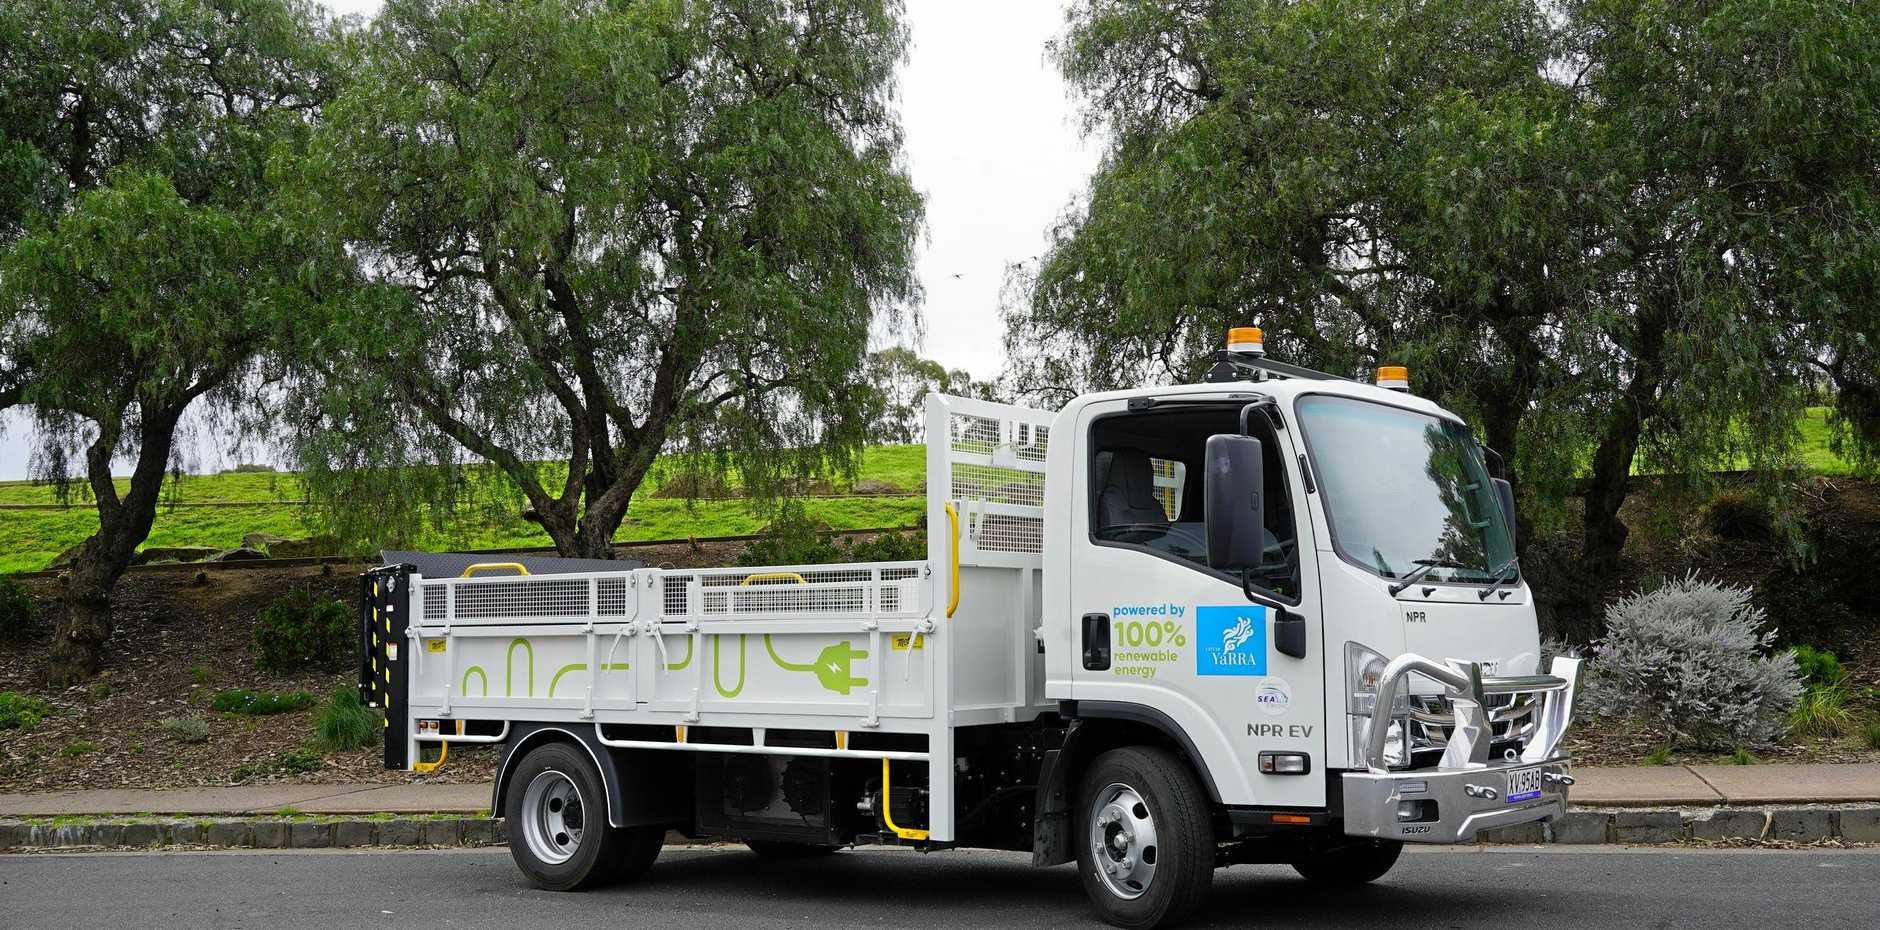 AUSTRALIAN FIRST: The electric tipper will be used five days a week for hard rubbish collections around Yarra streets.